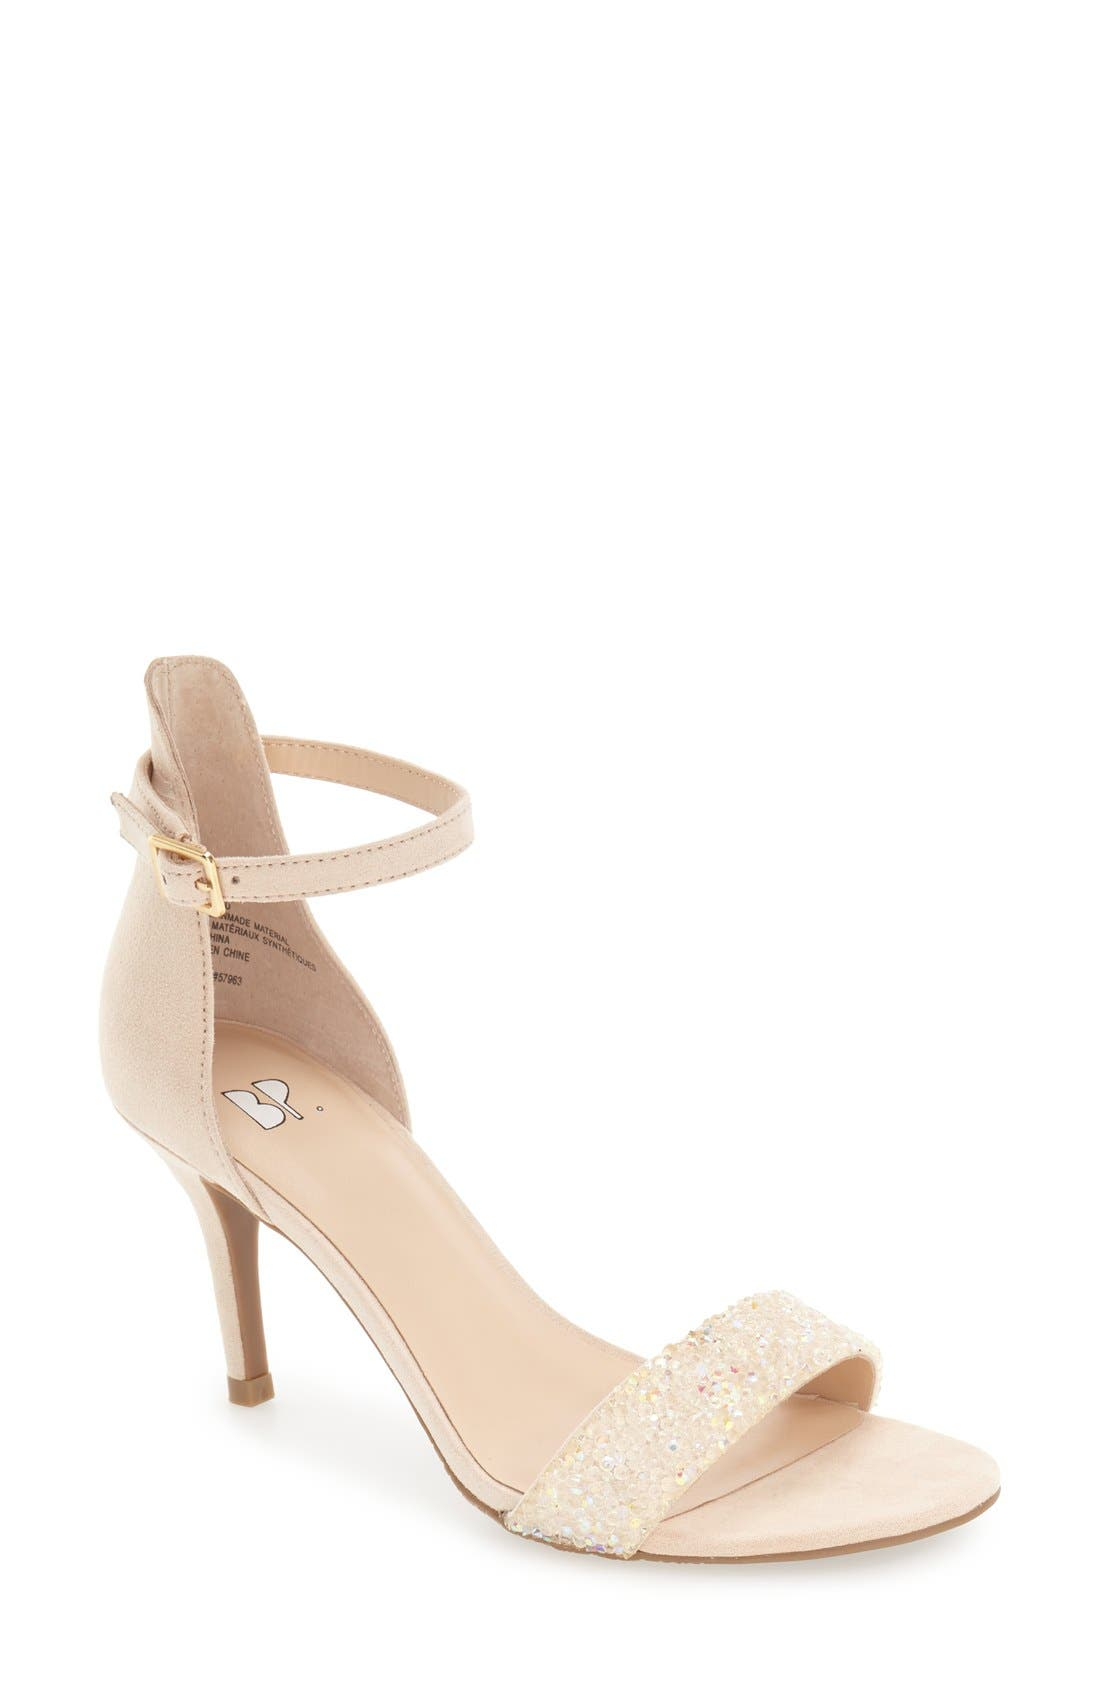 'Luminate' Open Toe Dress Sandal,                             Main thumbnail 29, color,